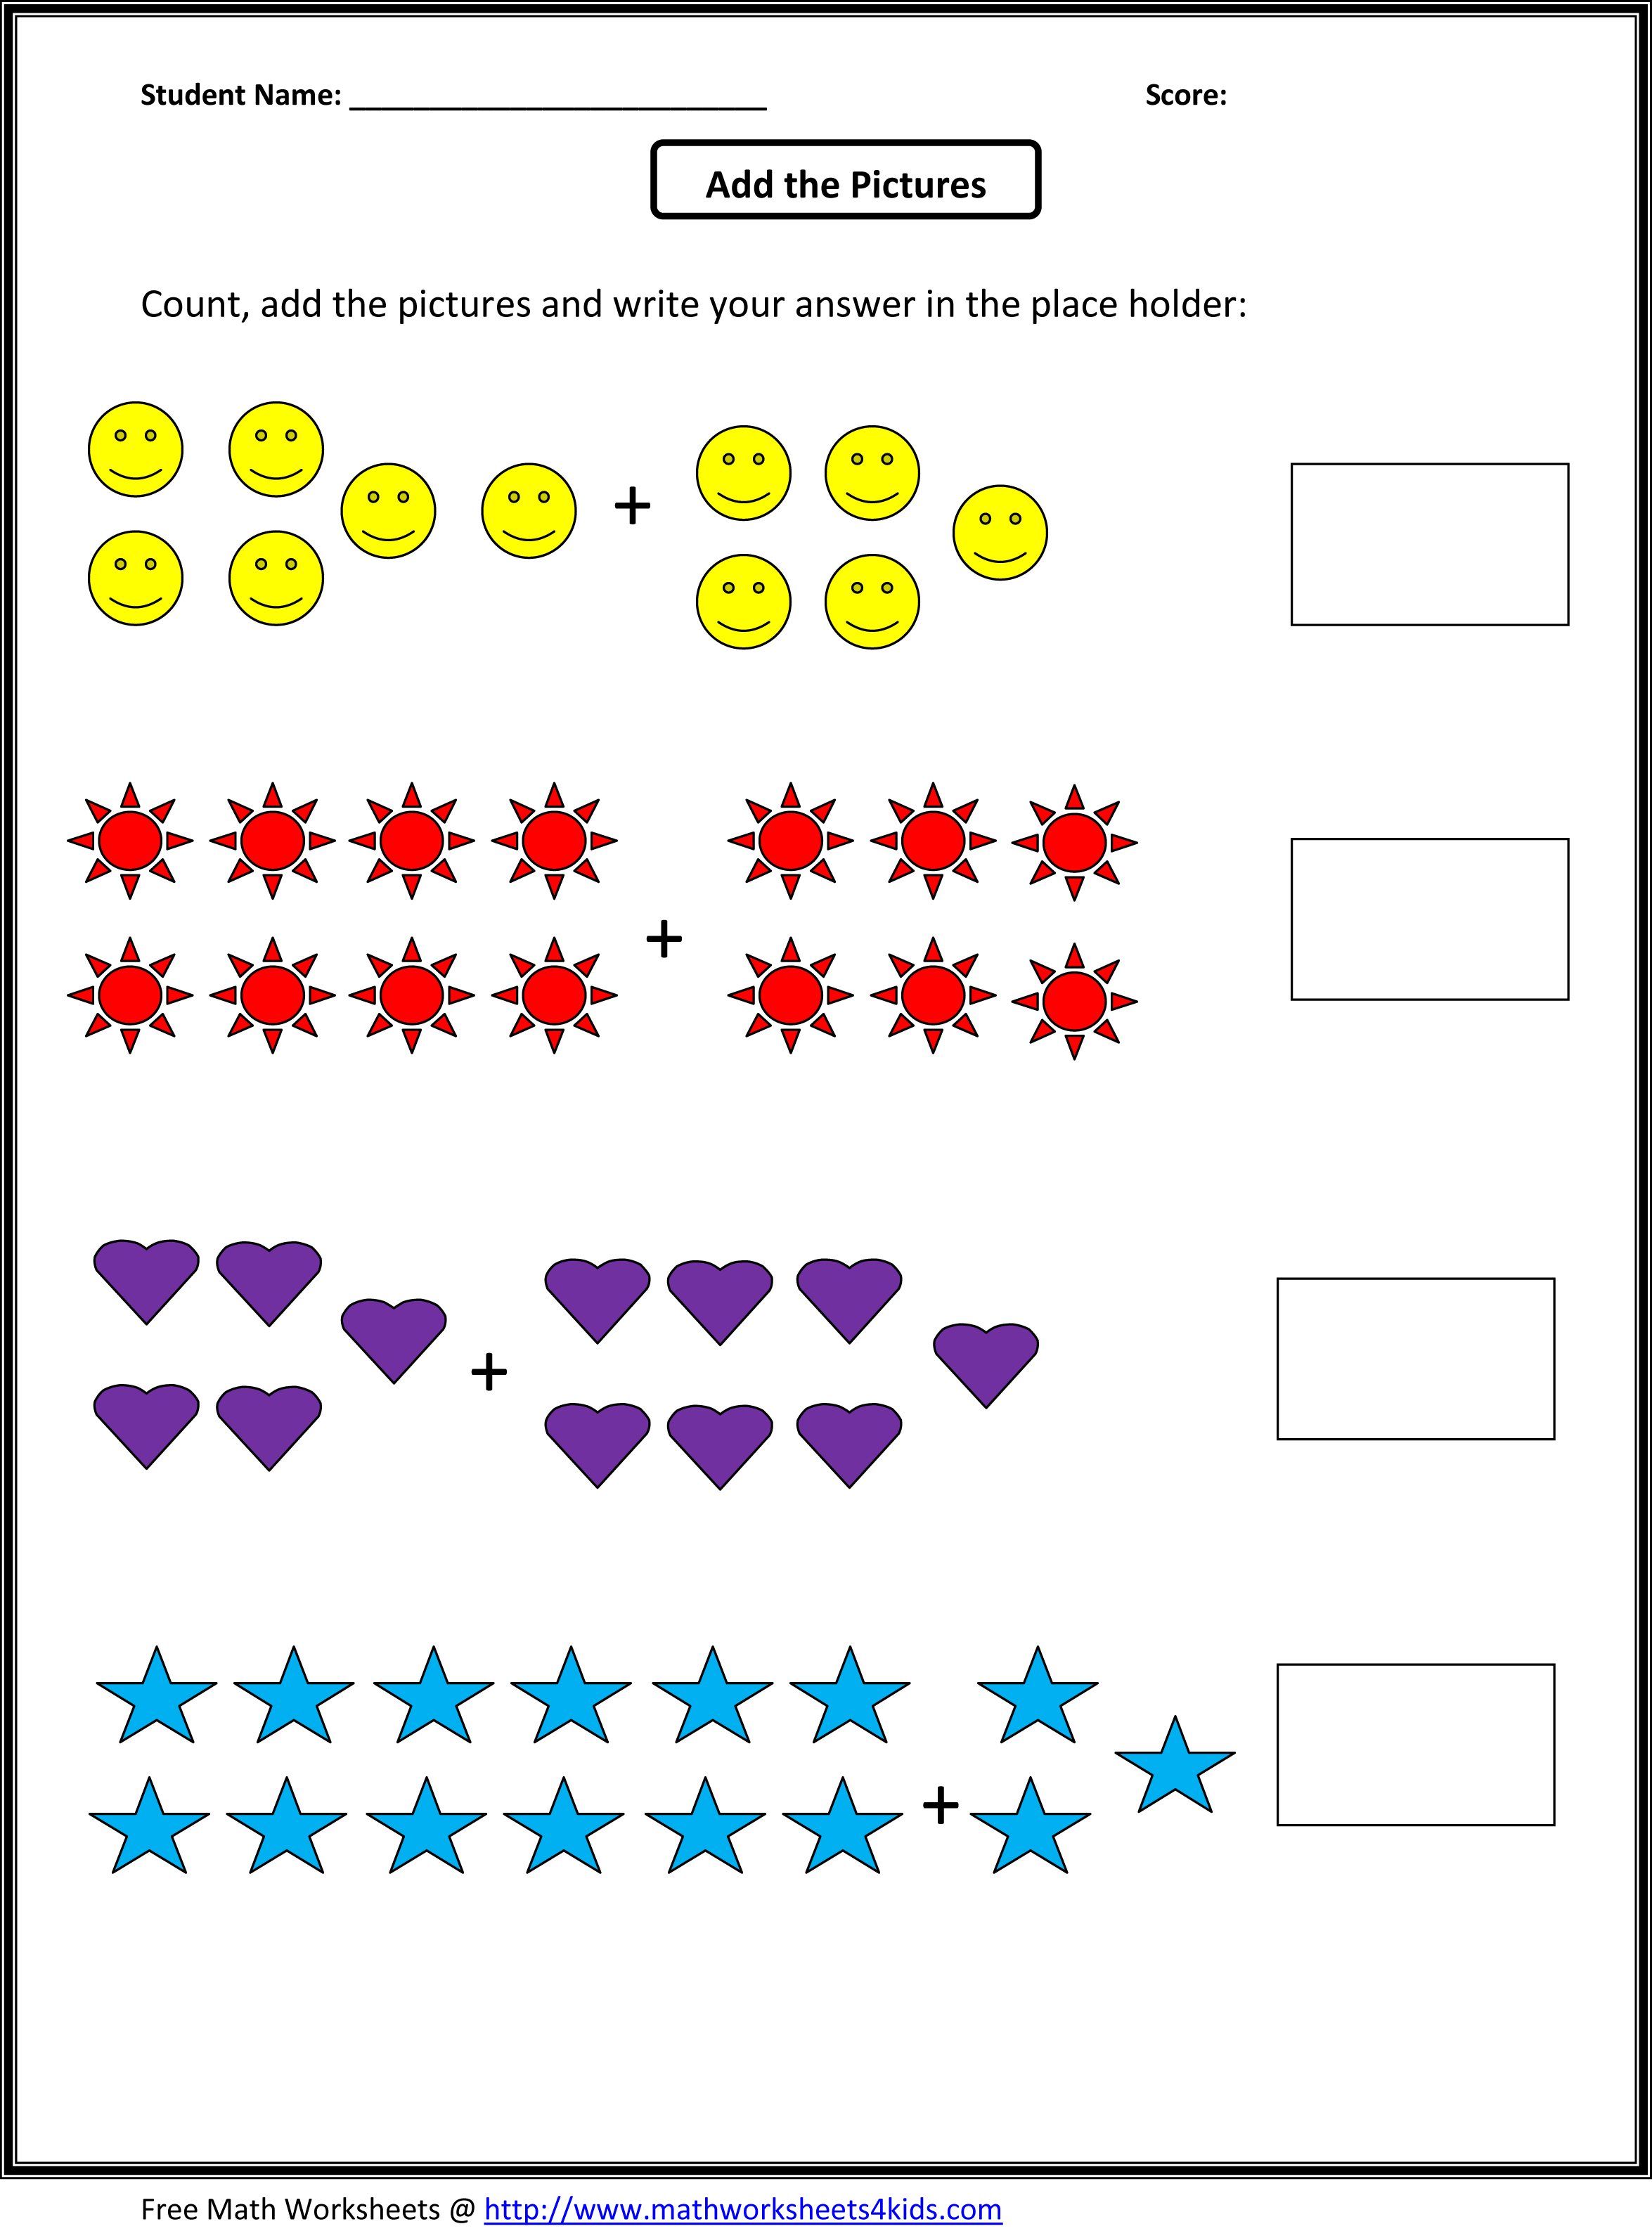 Weirdmailus  Ravishing Grade  Maths Worksheet  Reocurent With Exciting Math Worksheets For St Grade Free  Reocurent With Breathtaking Counting Objects To  Worksheets Also Letter U Worksheets For Kindergarten In Addition Multiply By  Worksheets And Multiplication Algorithm Worksheets As Well As Casey At The Bat Worksheet Additionally Italy Worksheets From Reocurentcom With Weirdmailus  Exciting Grade  Maths Worksheet  Reocurent With Breathtaking Math Worksheets For St Grade Free  Reocurent And Ravishing Counting Objects To  Worksheets Also Letter U Worksheets For Kindergarten In Addition Multiply By  Worksheets From Reocurentcom